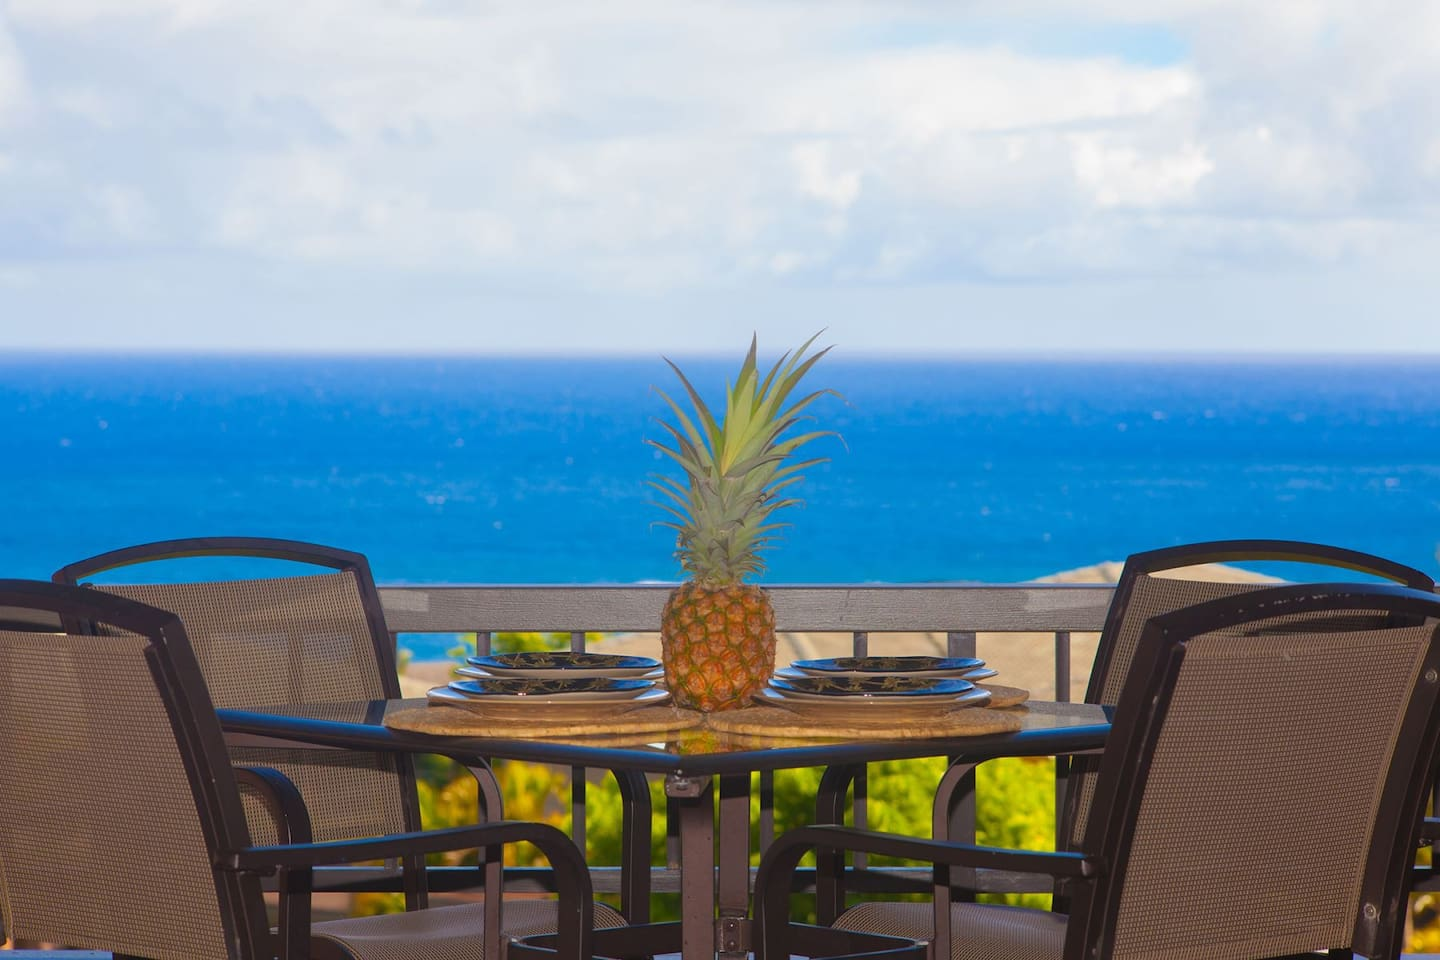 Enjoy a fabulous Maui dinner with good company and stunning ocean views